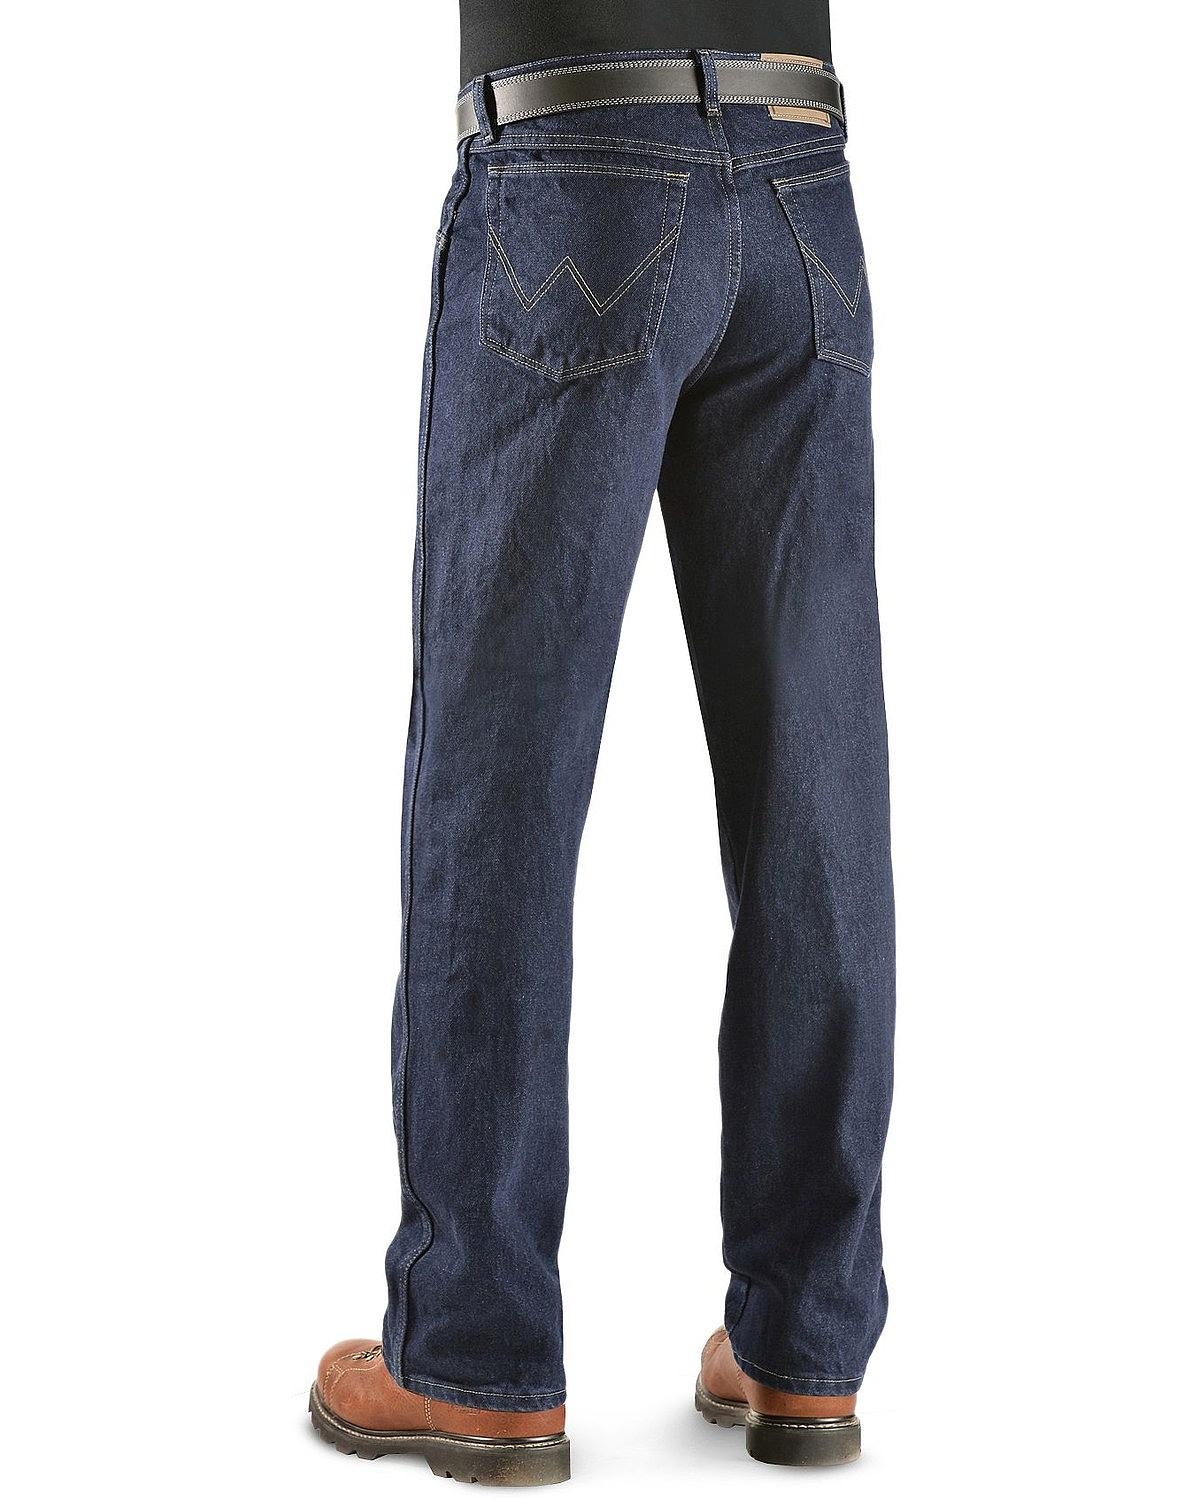 Free shipping BOTH ways on dockers mens dockers jeans d3 classic fit, from our vast selection of styles. Fast delivery, and 24/7/ real-person service with a smile. Click or call